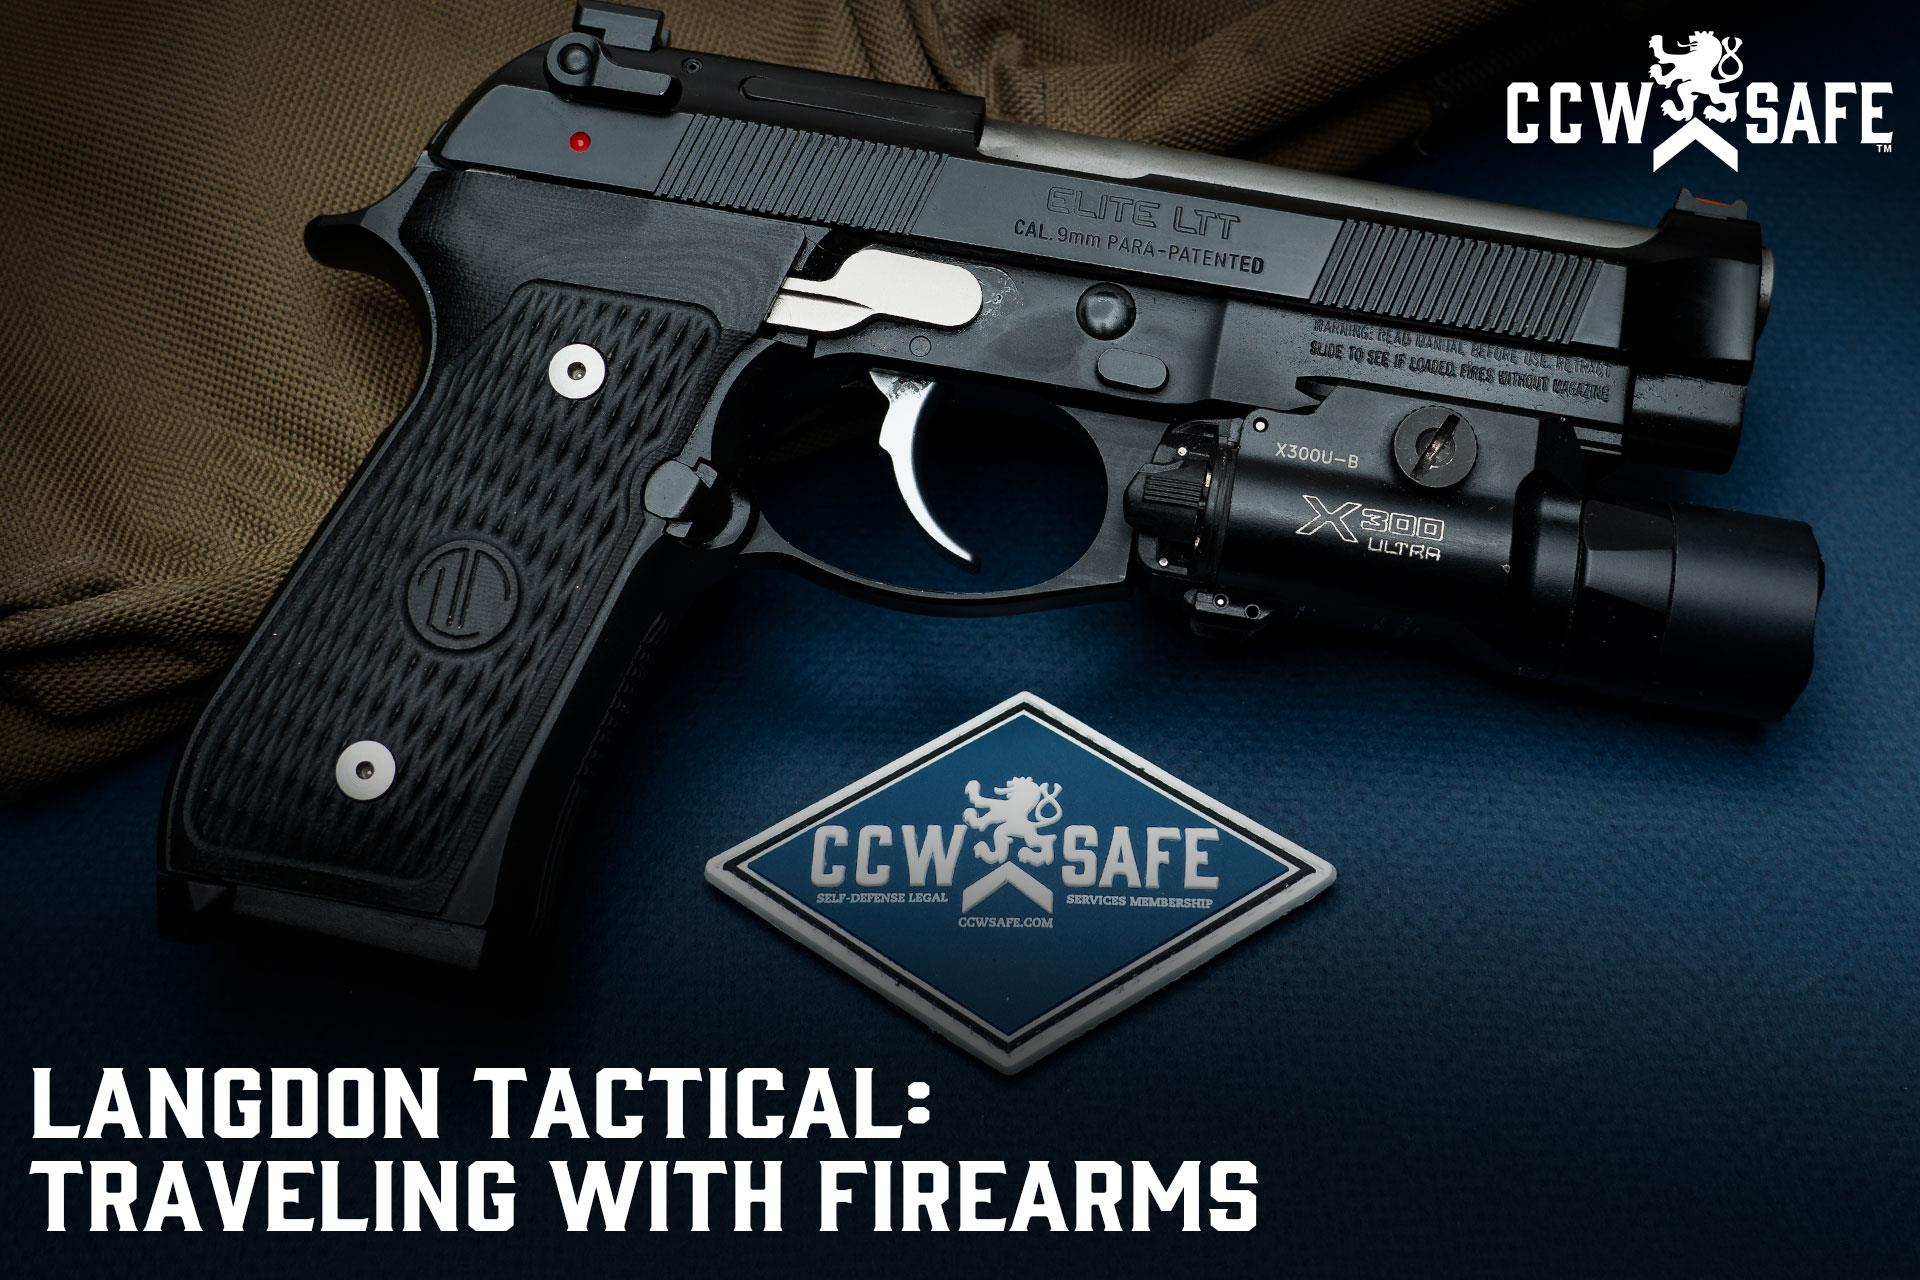 VIDEO - Langdon Tactical: Traveling With Firearms